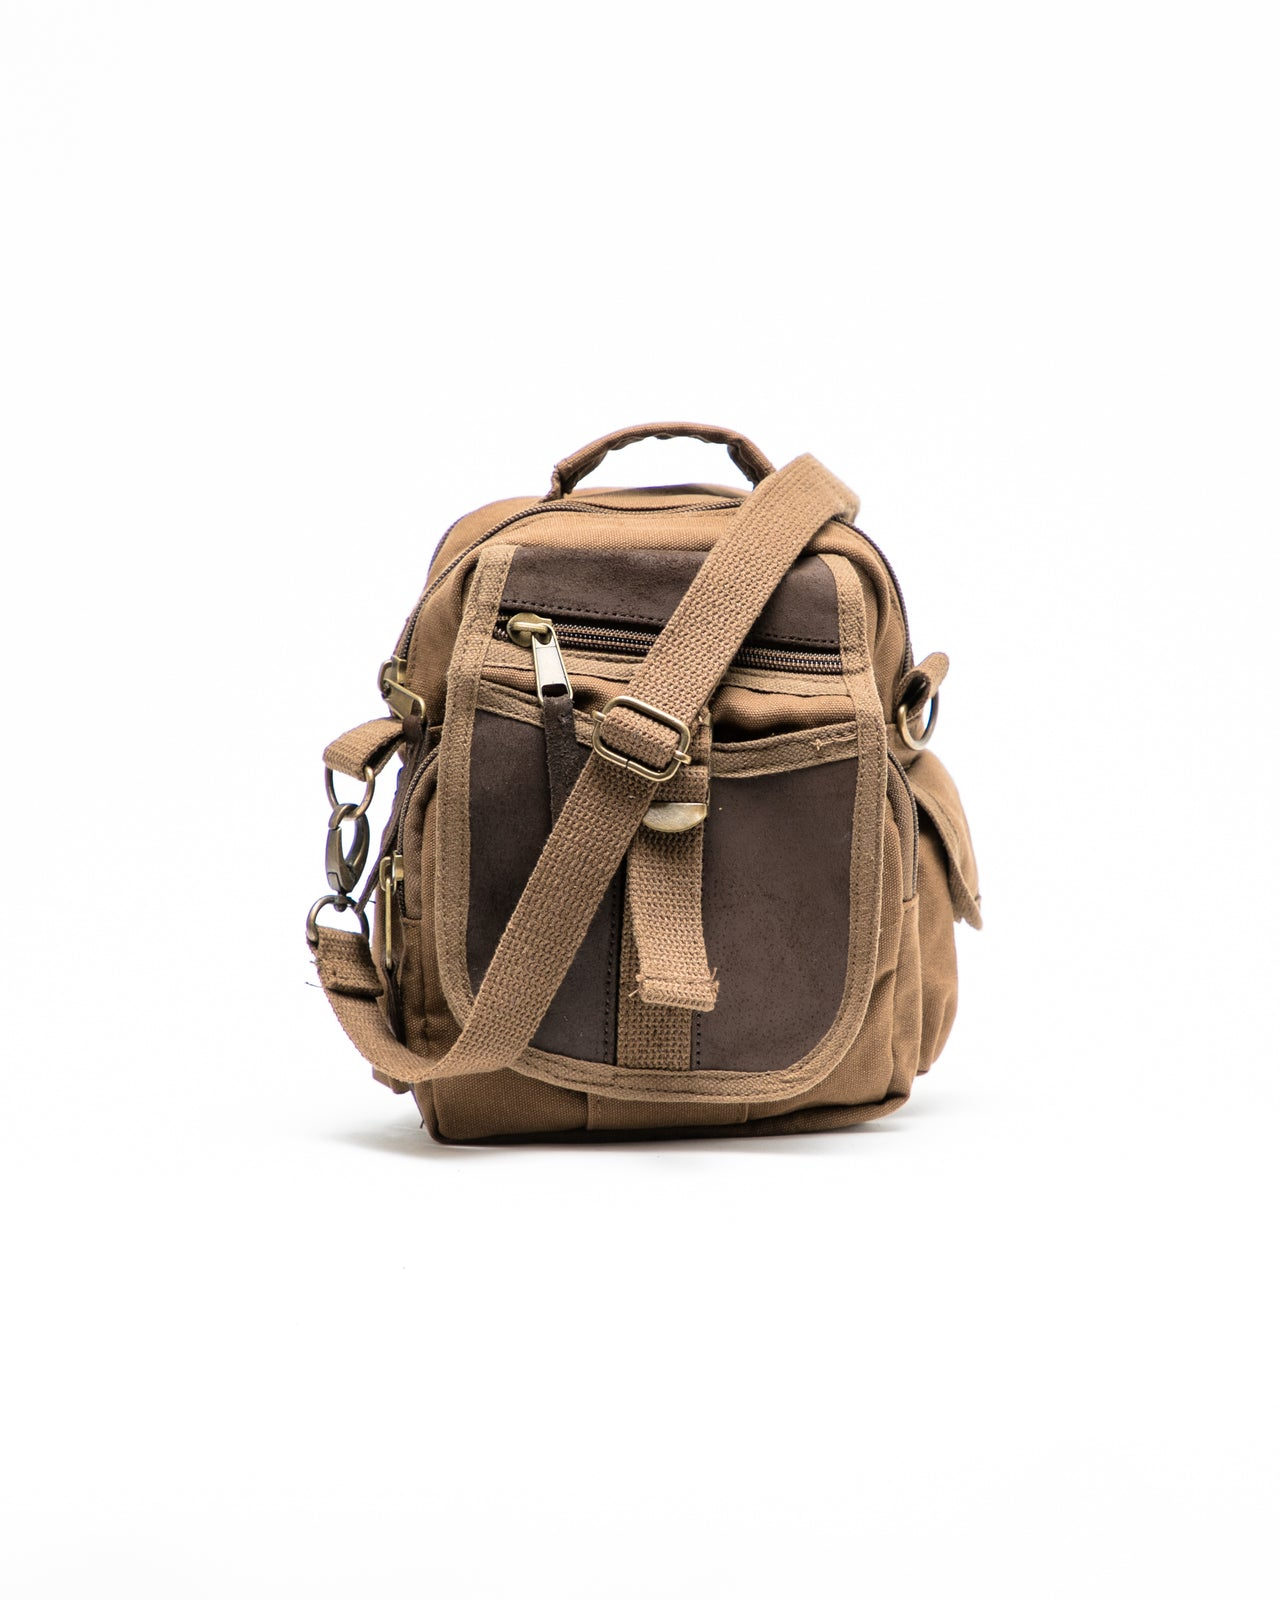 Travell Shoulder Bag with Leather Accents - Color: Brown | Brown